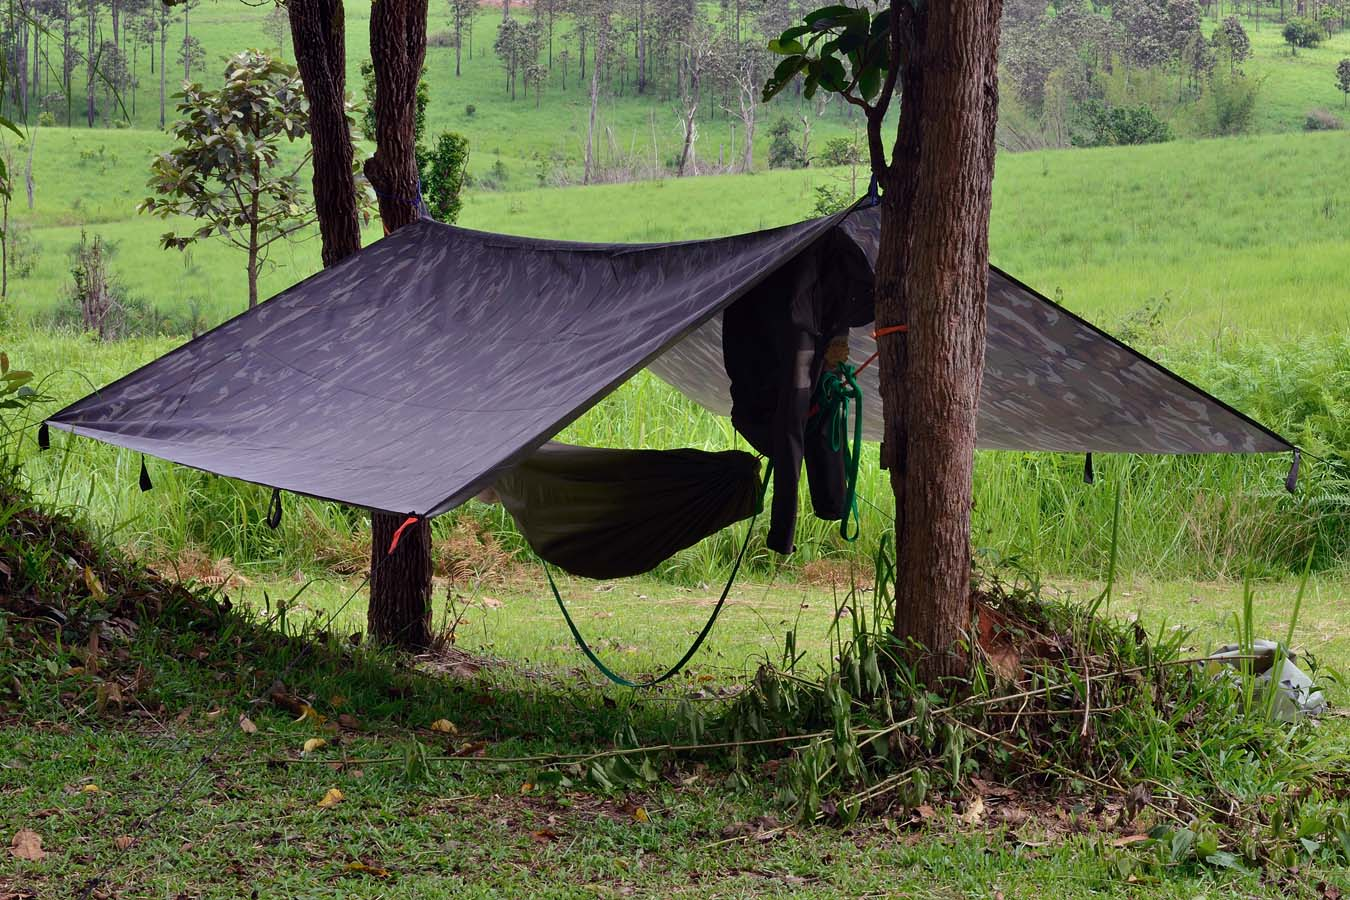 How to choose a camping hammock